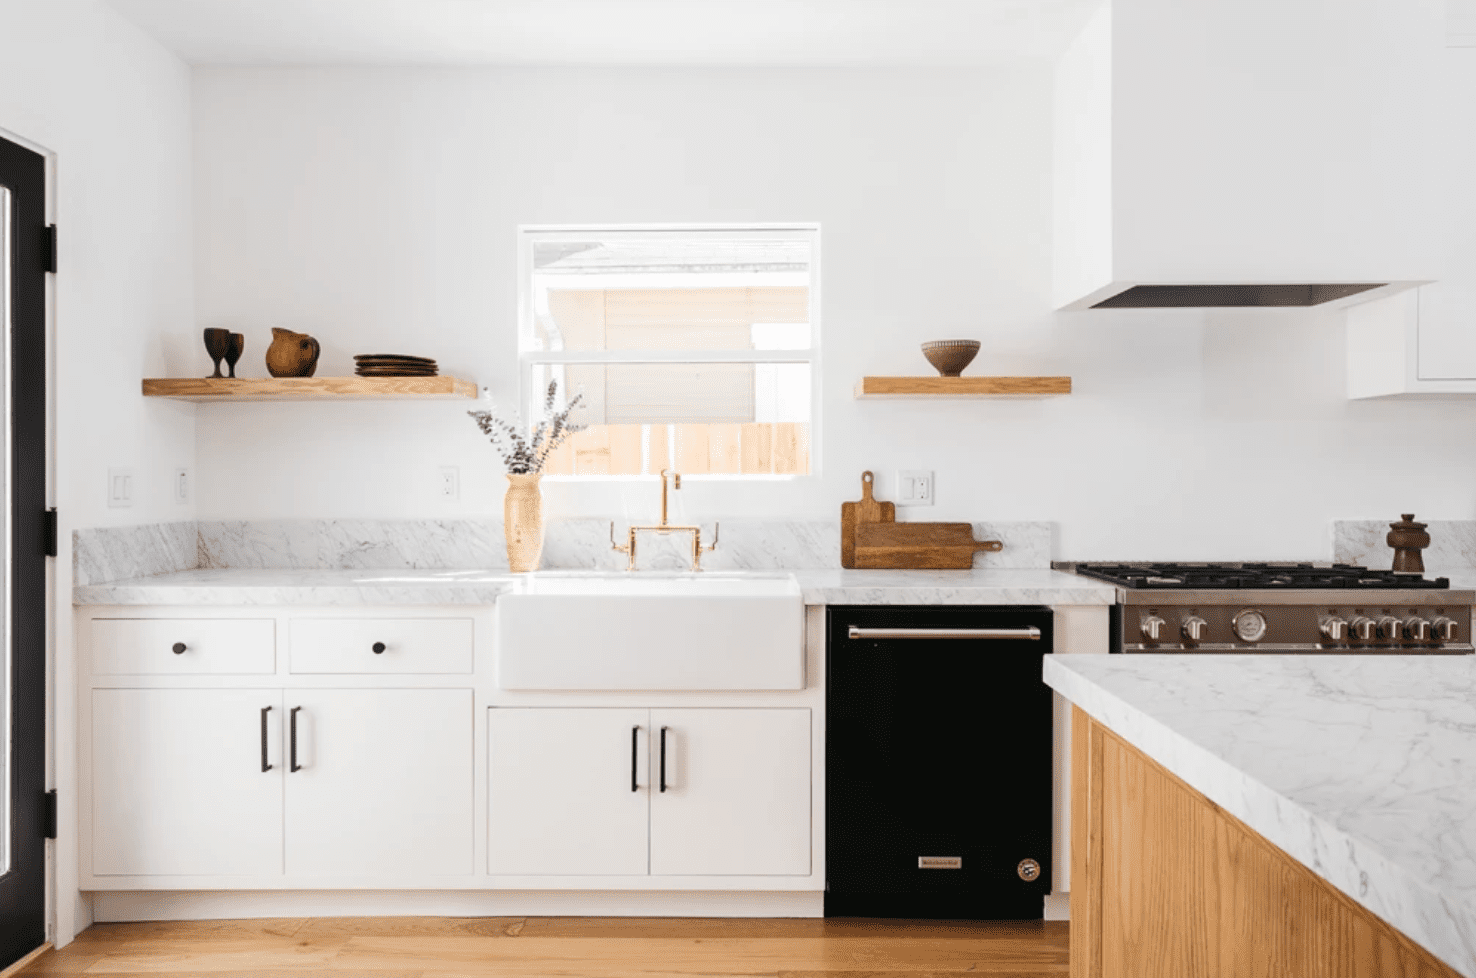 A minimalist kitchen with white cabinets, wooden shelves, and a white enclosed range hood